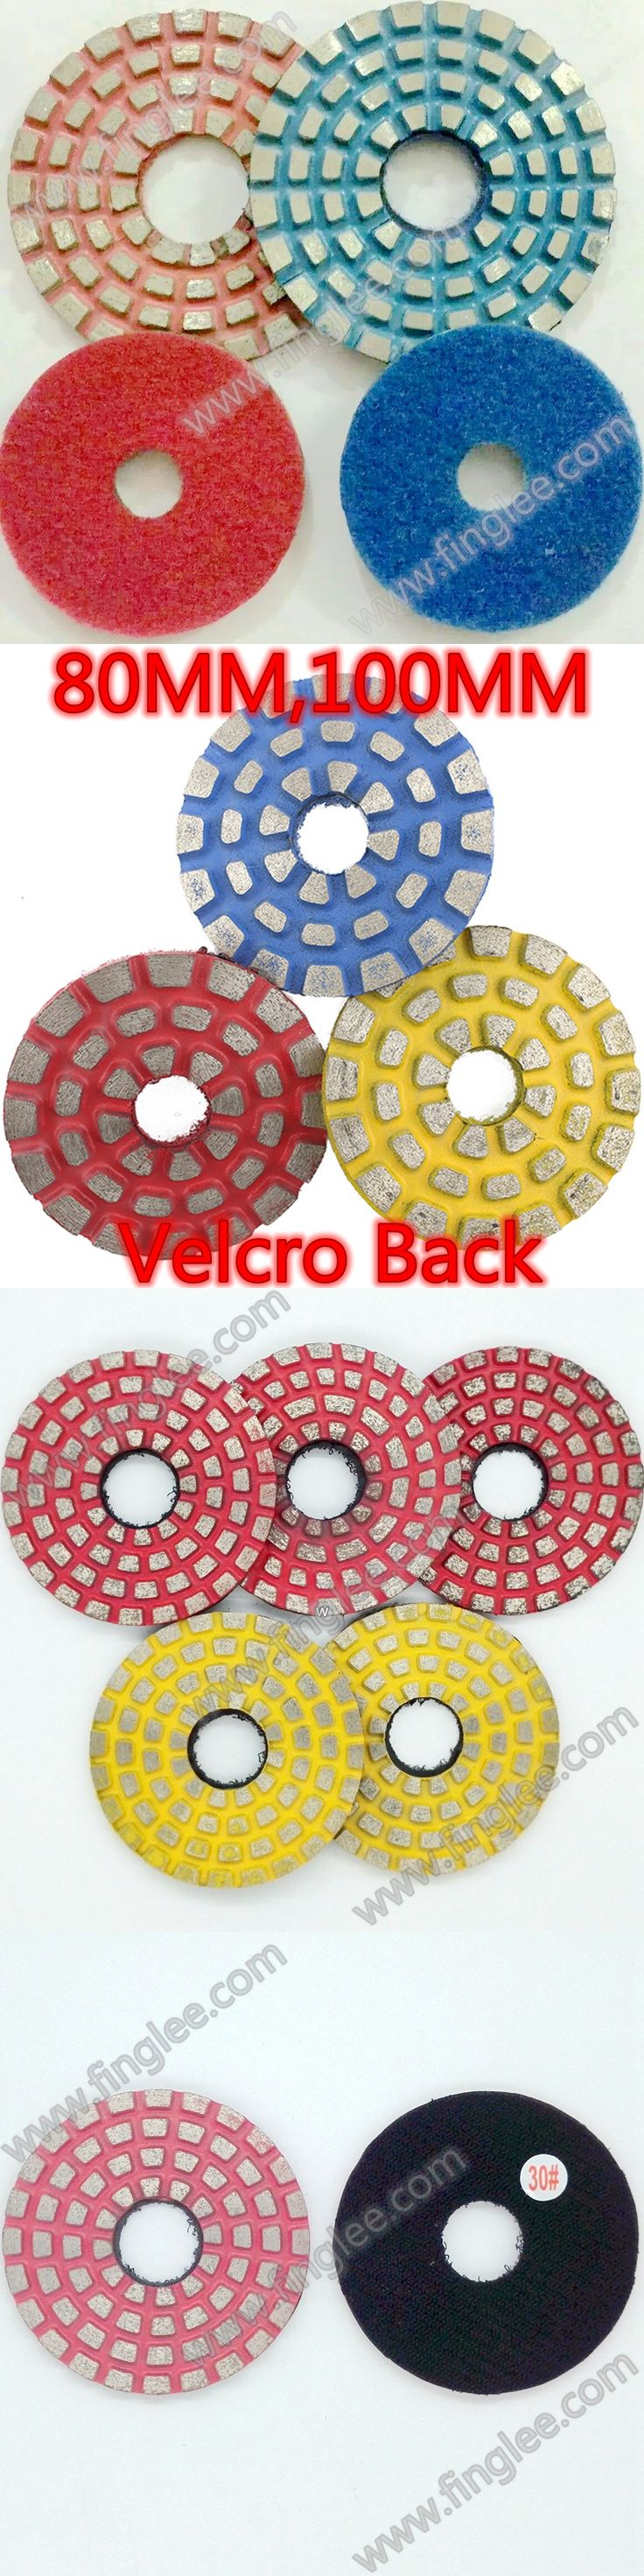 FINGLEE 3 Inch Polishing Pads 80 mm Metal Bond Granite Polishing Pads Flexible Diamond Polishing Pad Grit 30#,50#,100#,200#